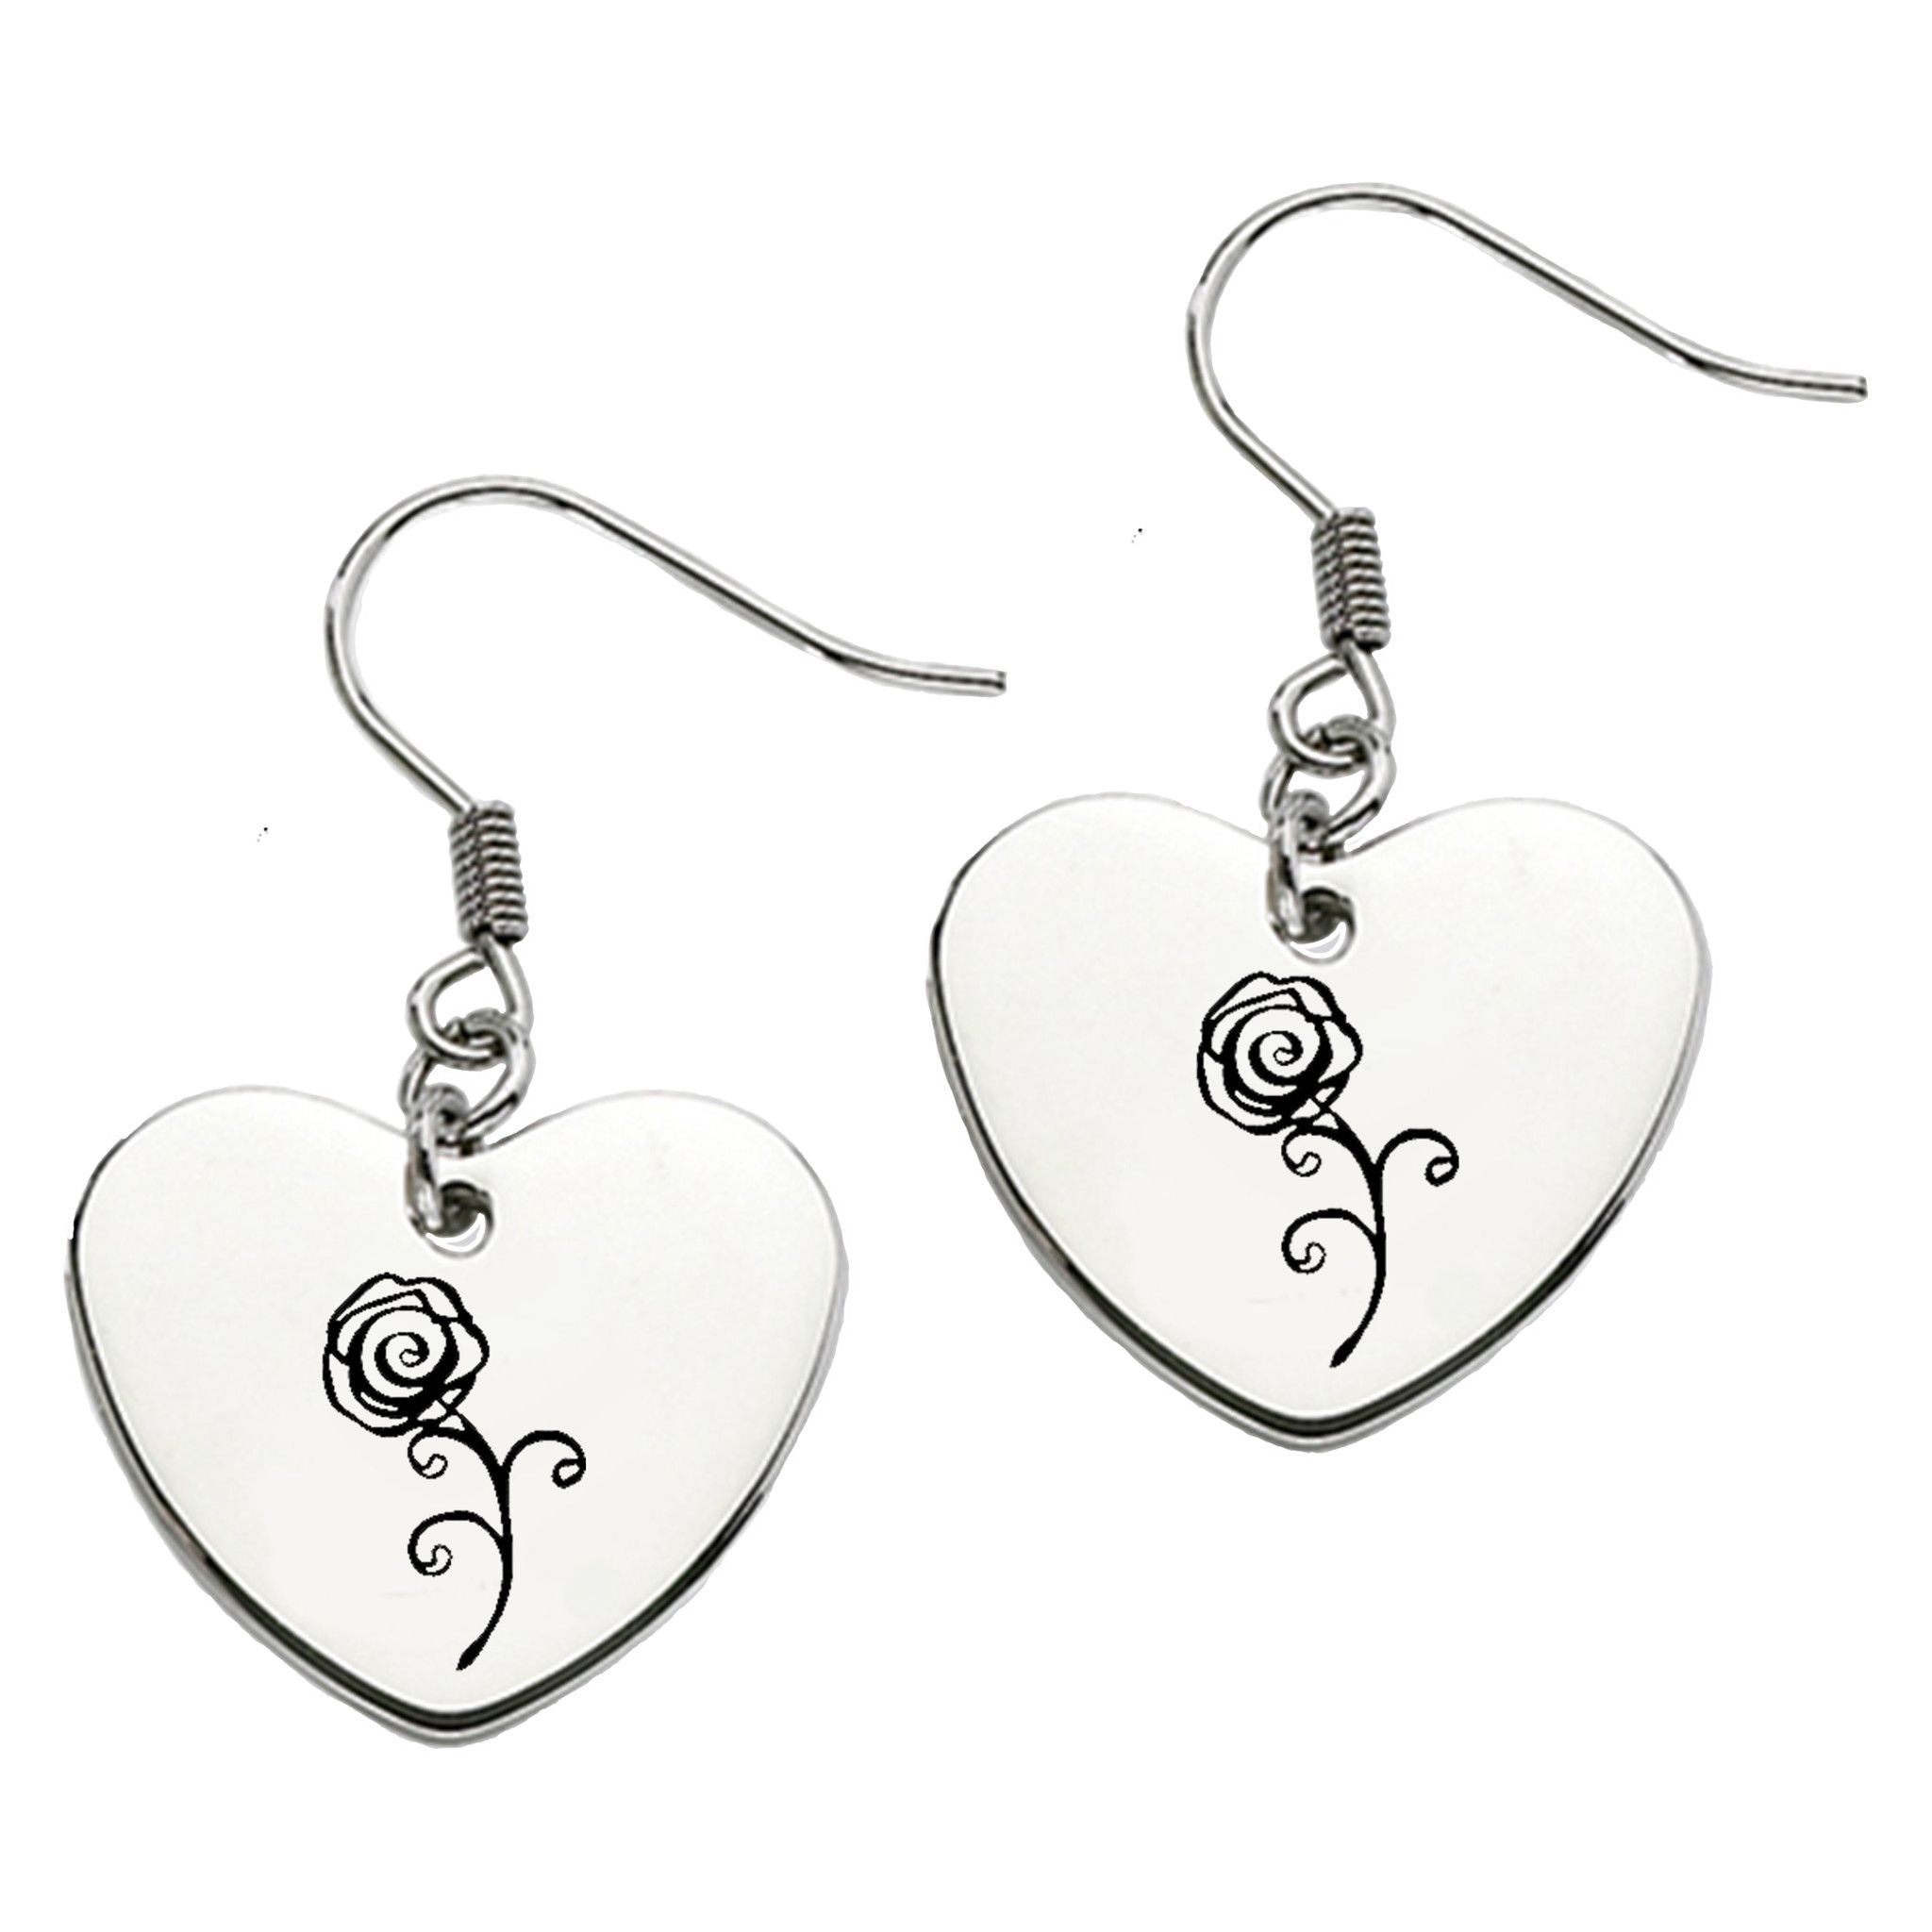 luulla studs earrings on shape original heart in diamond cutout silver product